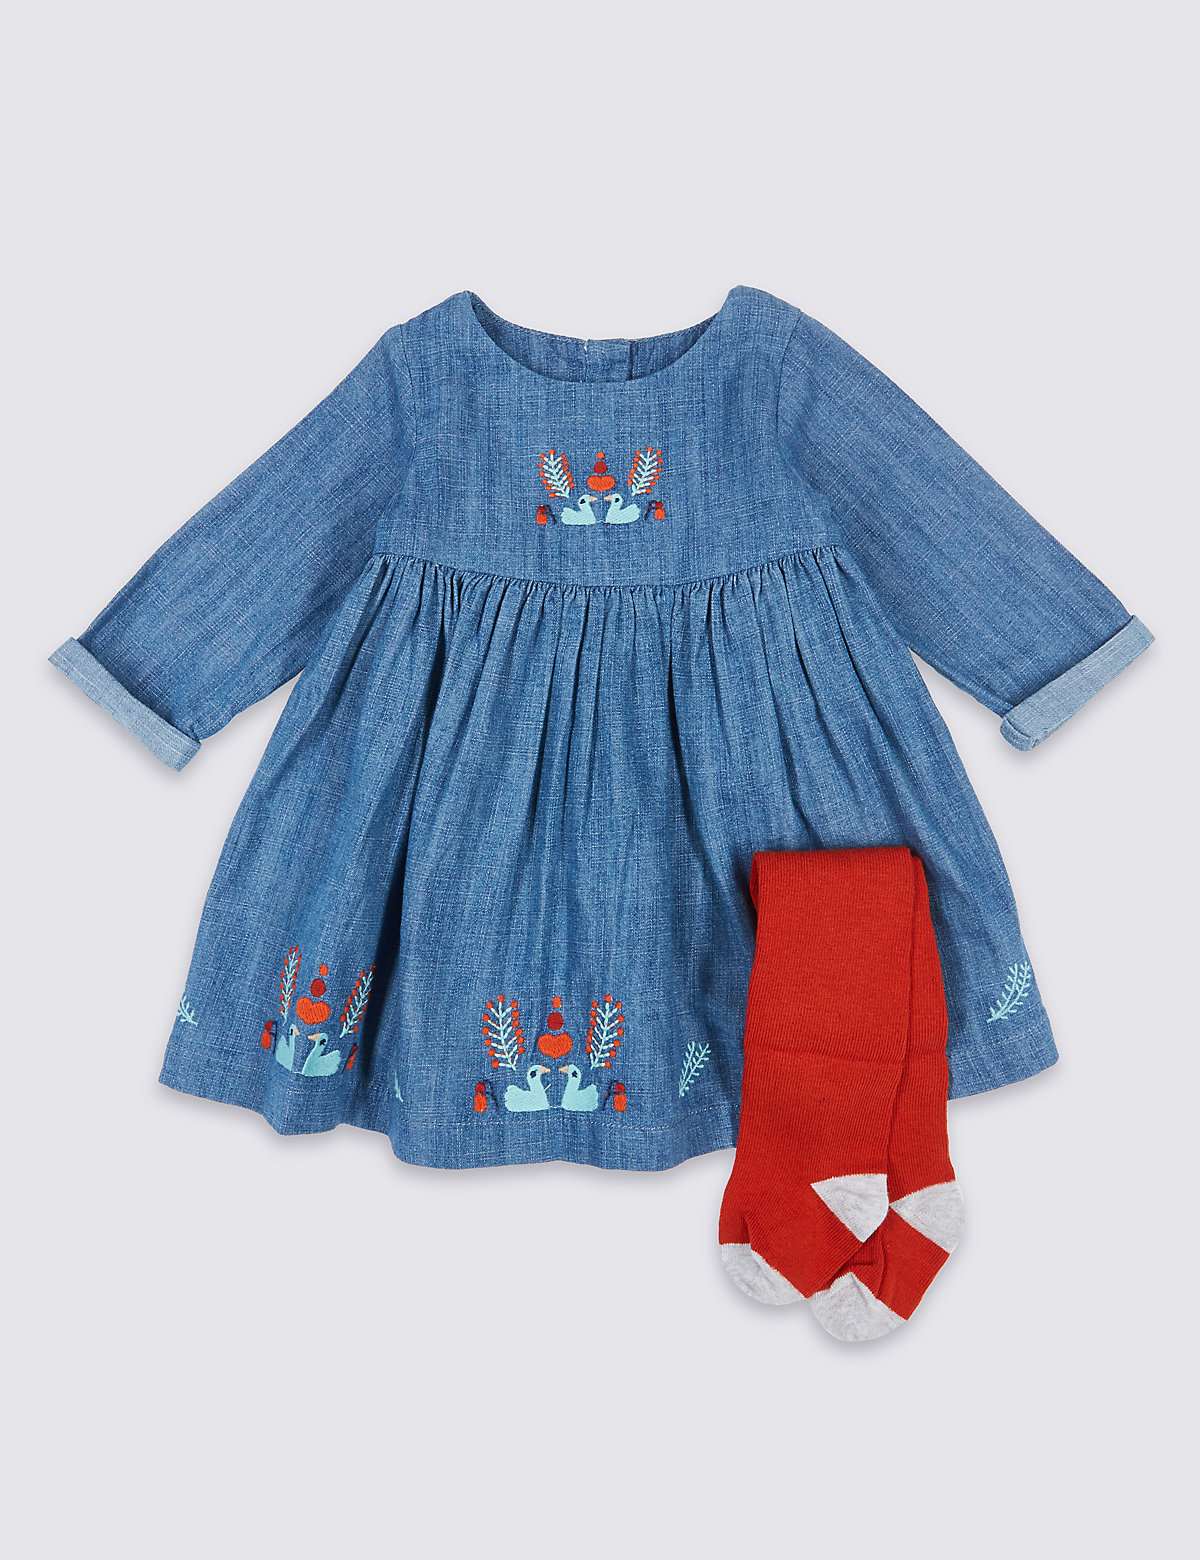 2 Piece Embroidered Baby Dress with Tights